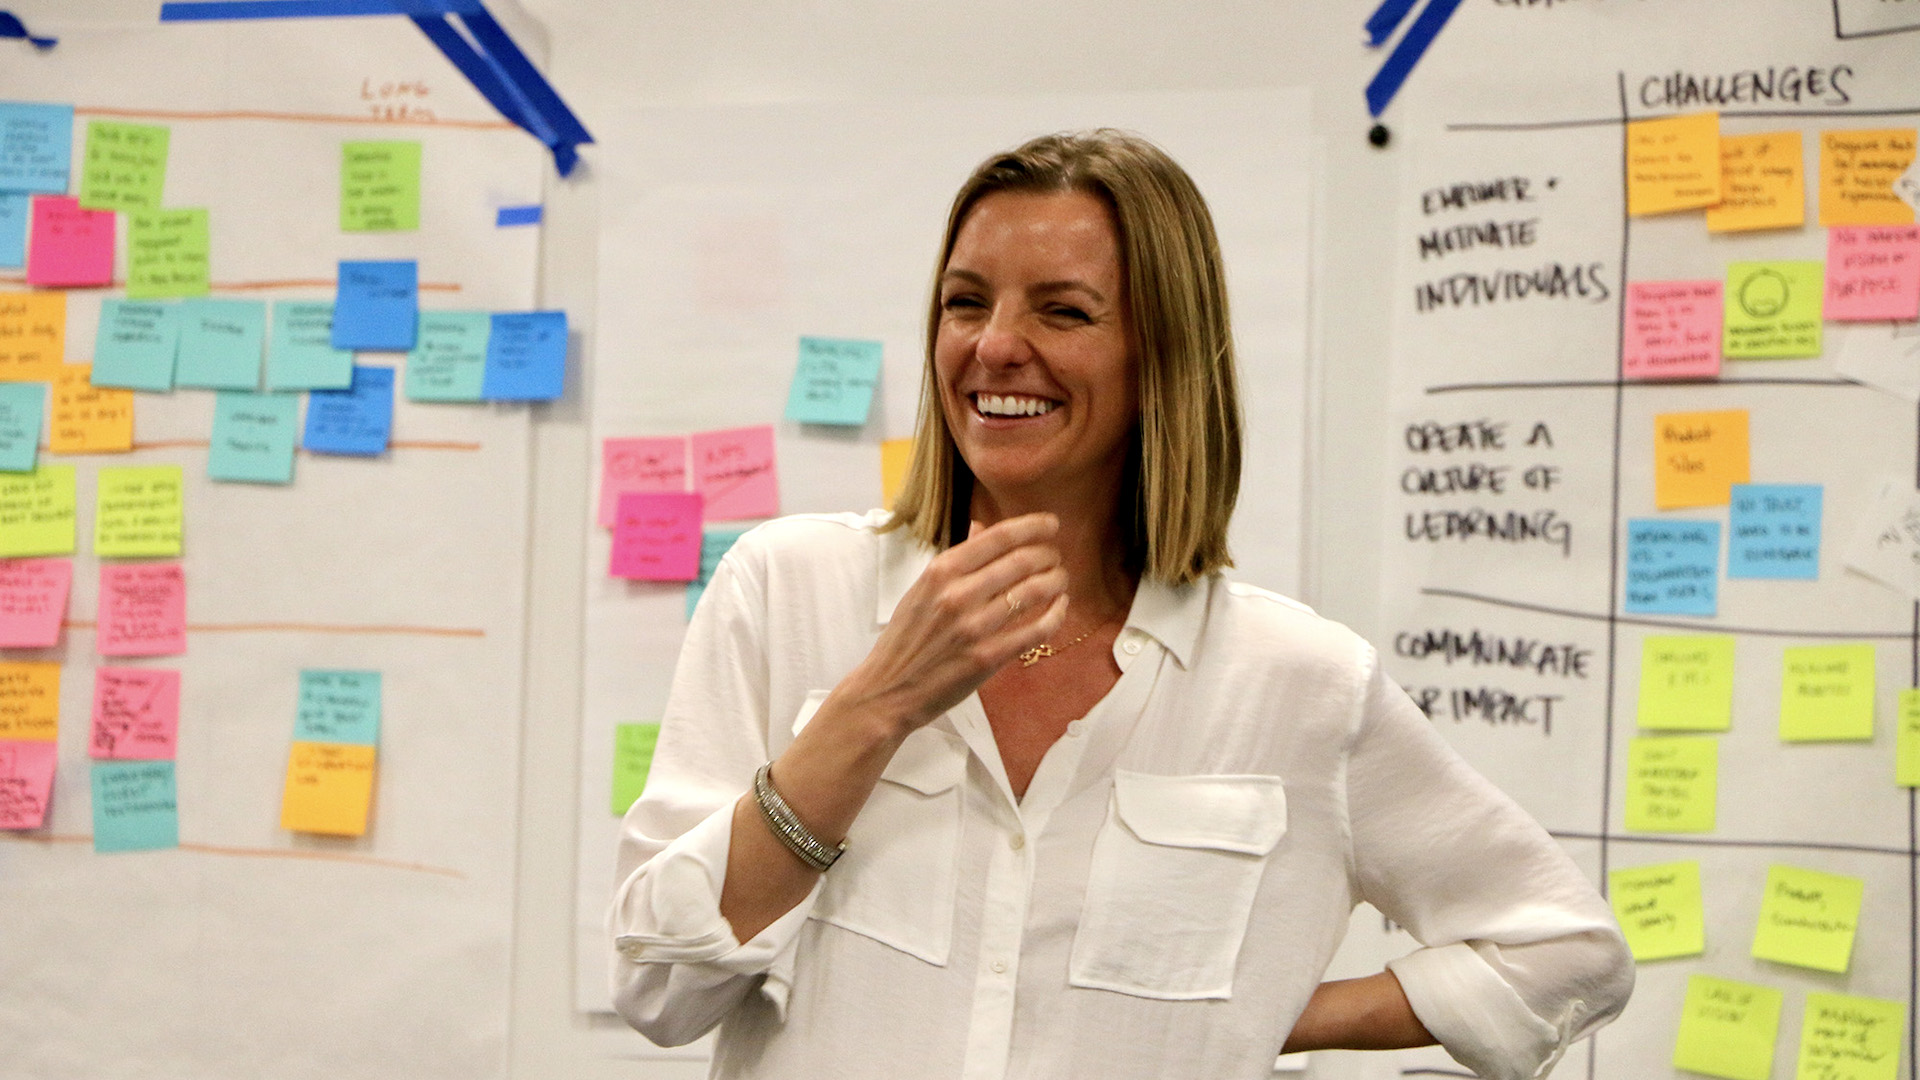 A smiling Teresa Brazen stands in front of a whiteboard covered with sticky notes and writing